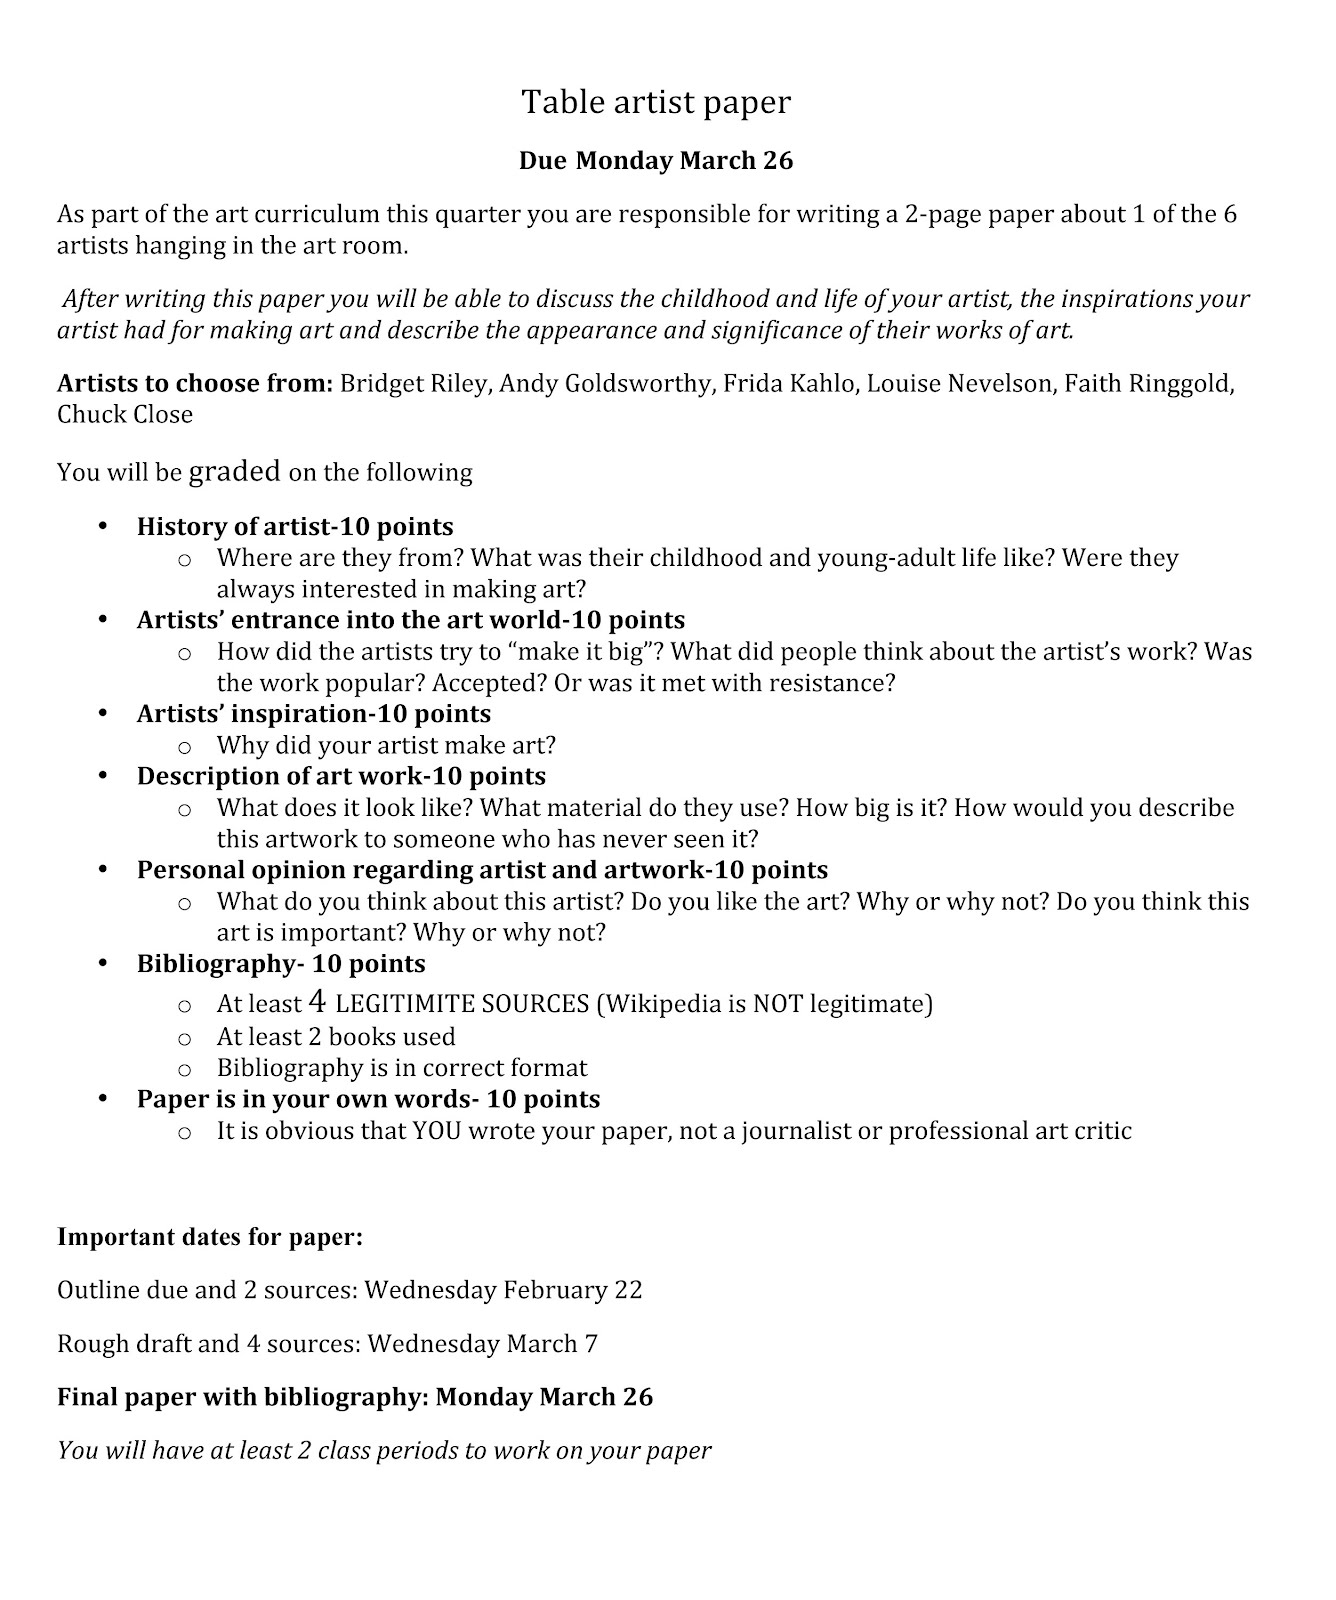 013 Research Paper Tableartistpaper High School History Formidable Rubric Full